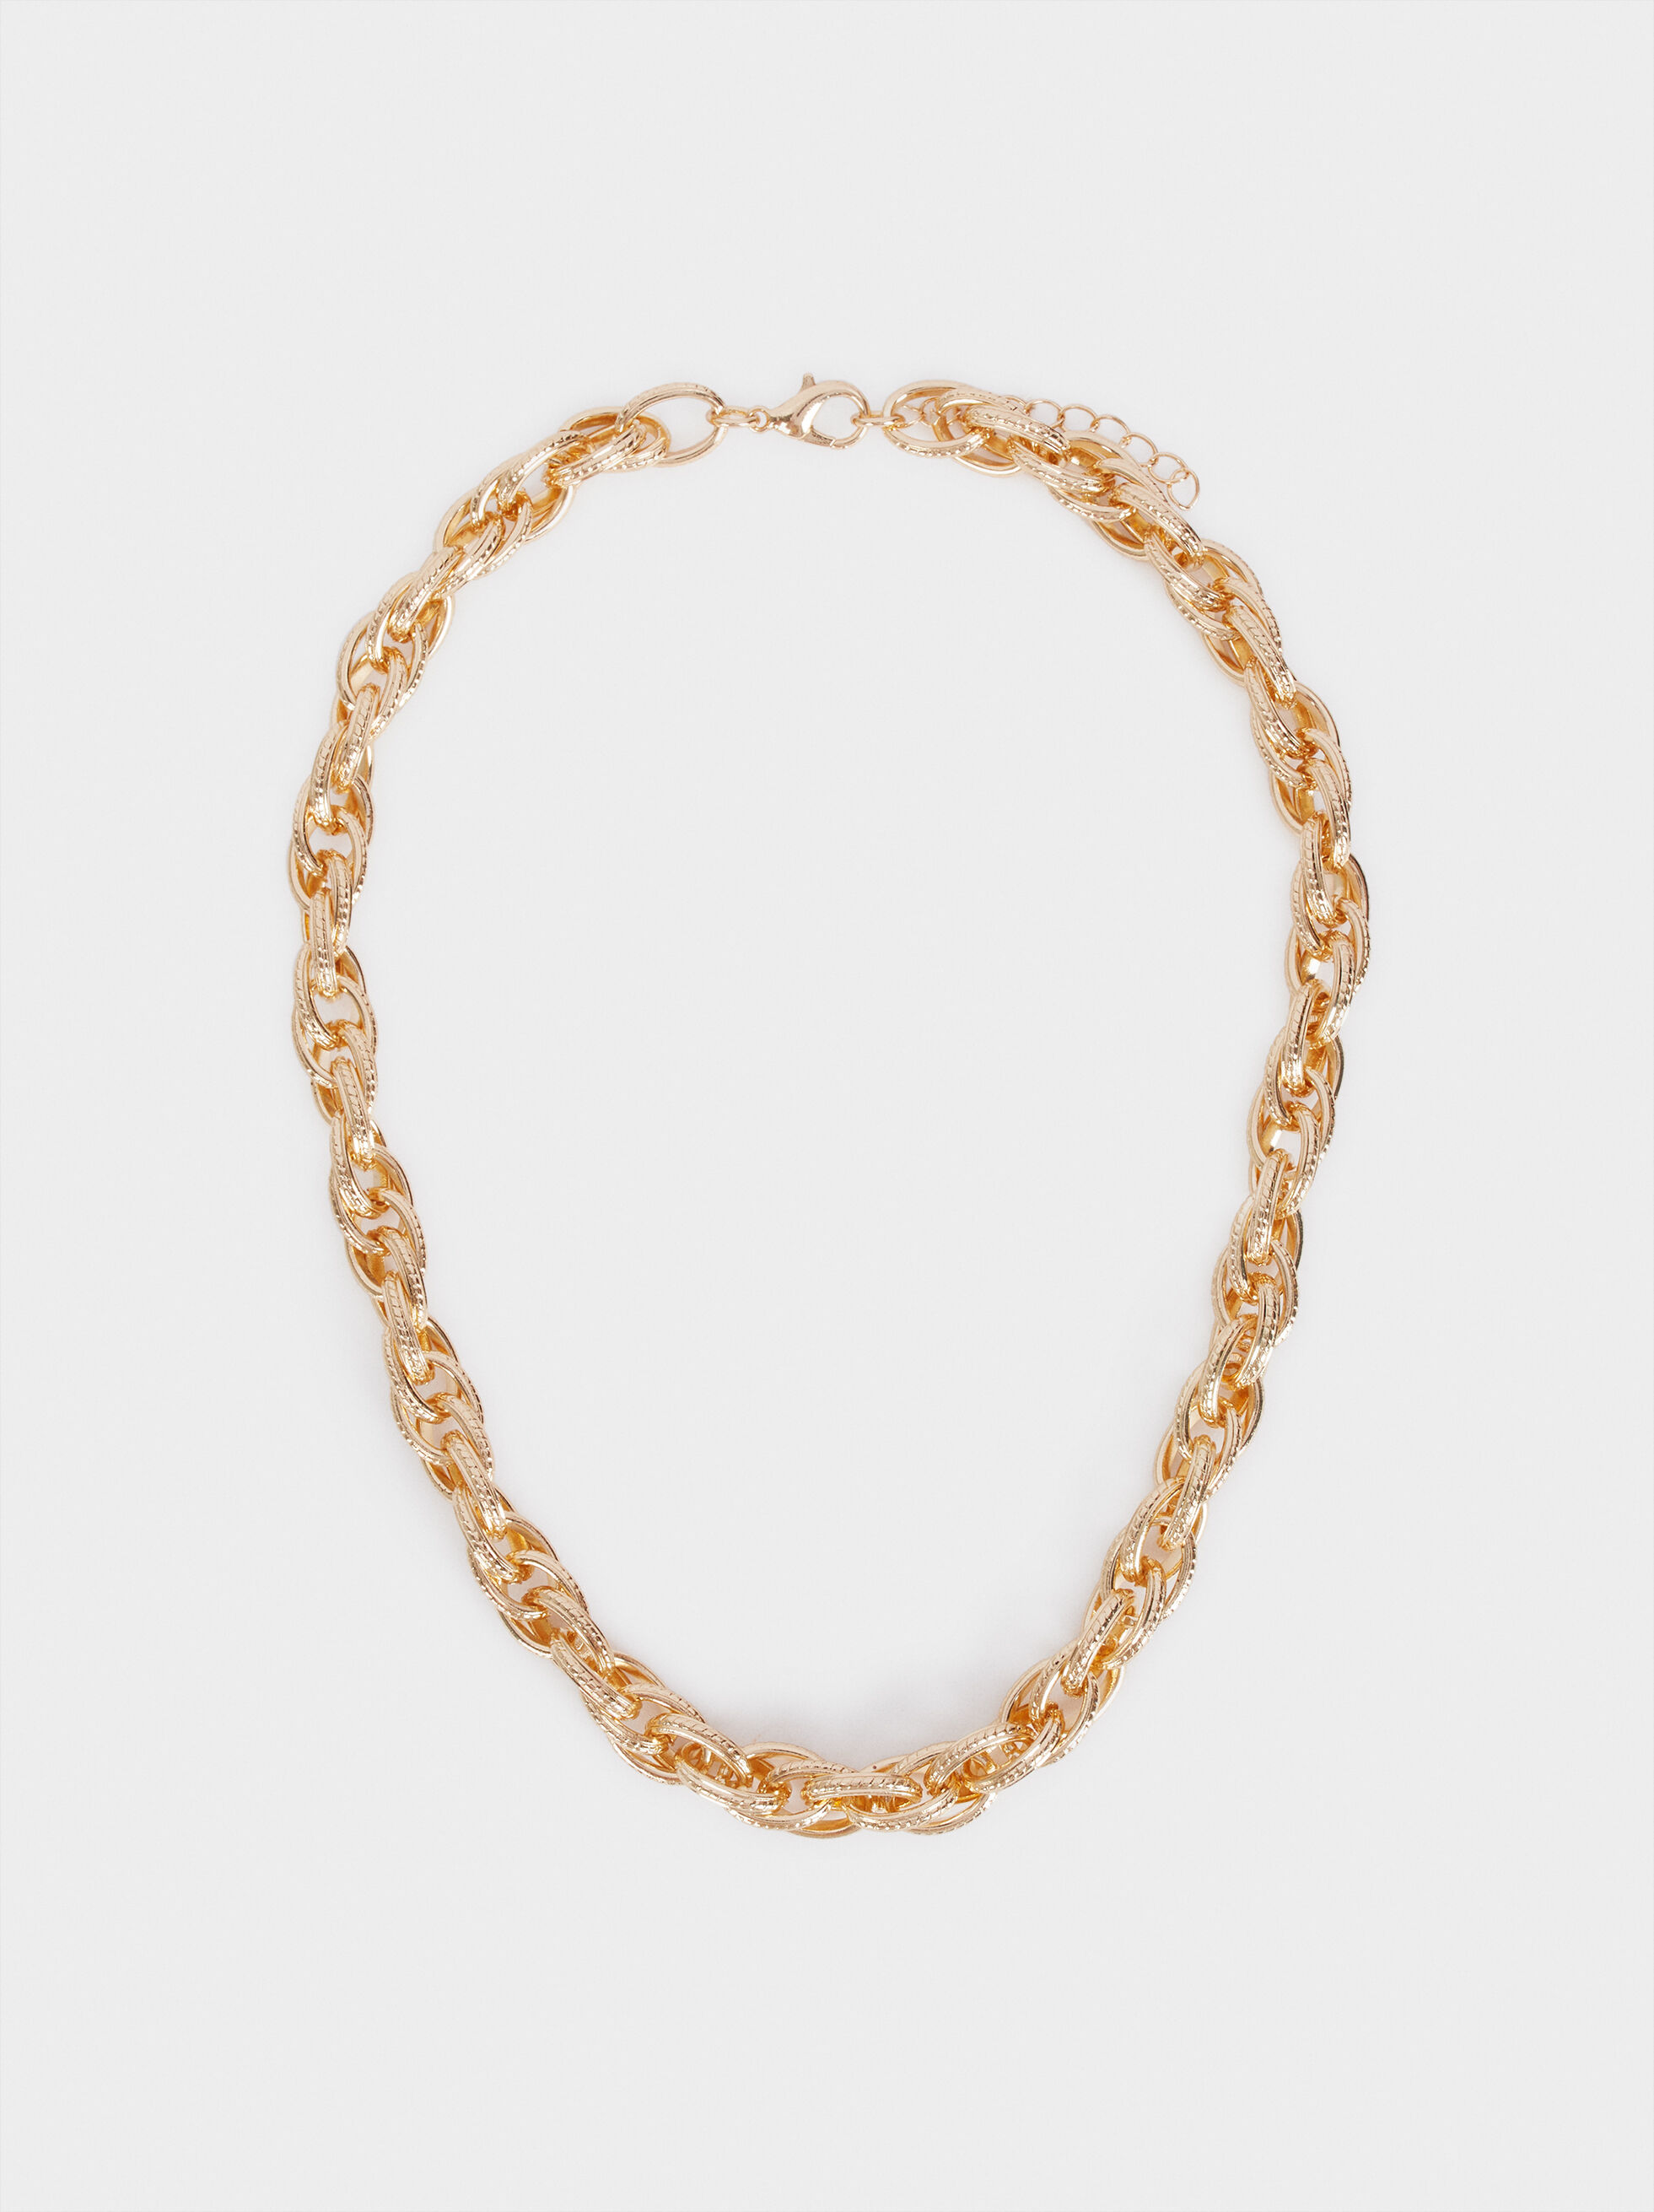 Short Necklace With Gold Links, Golden, hi-res